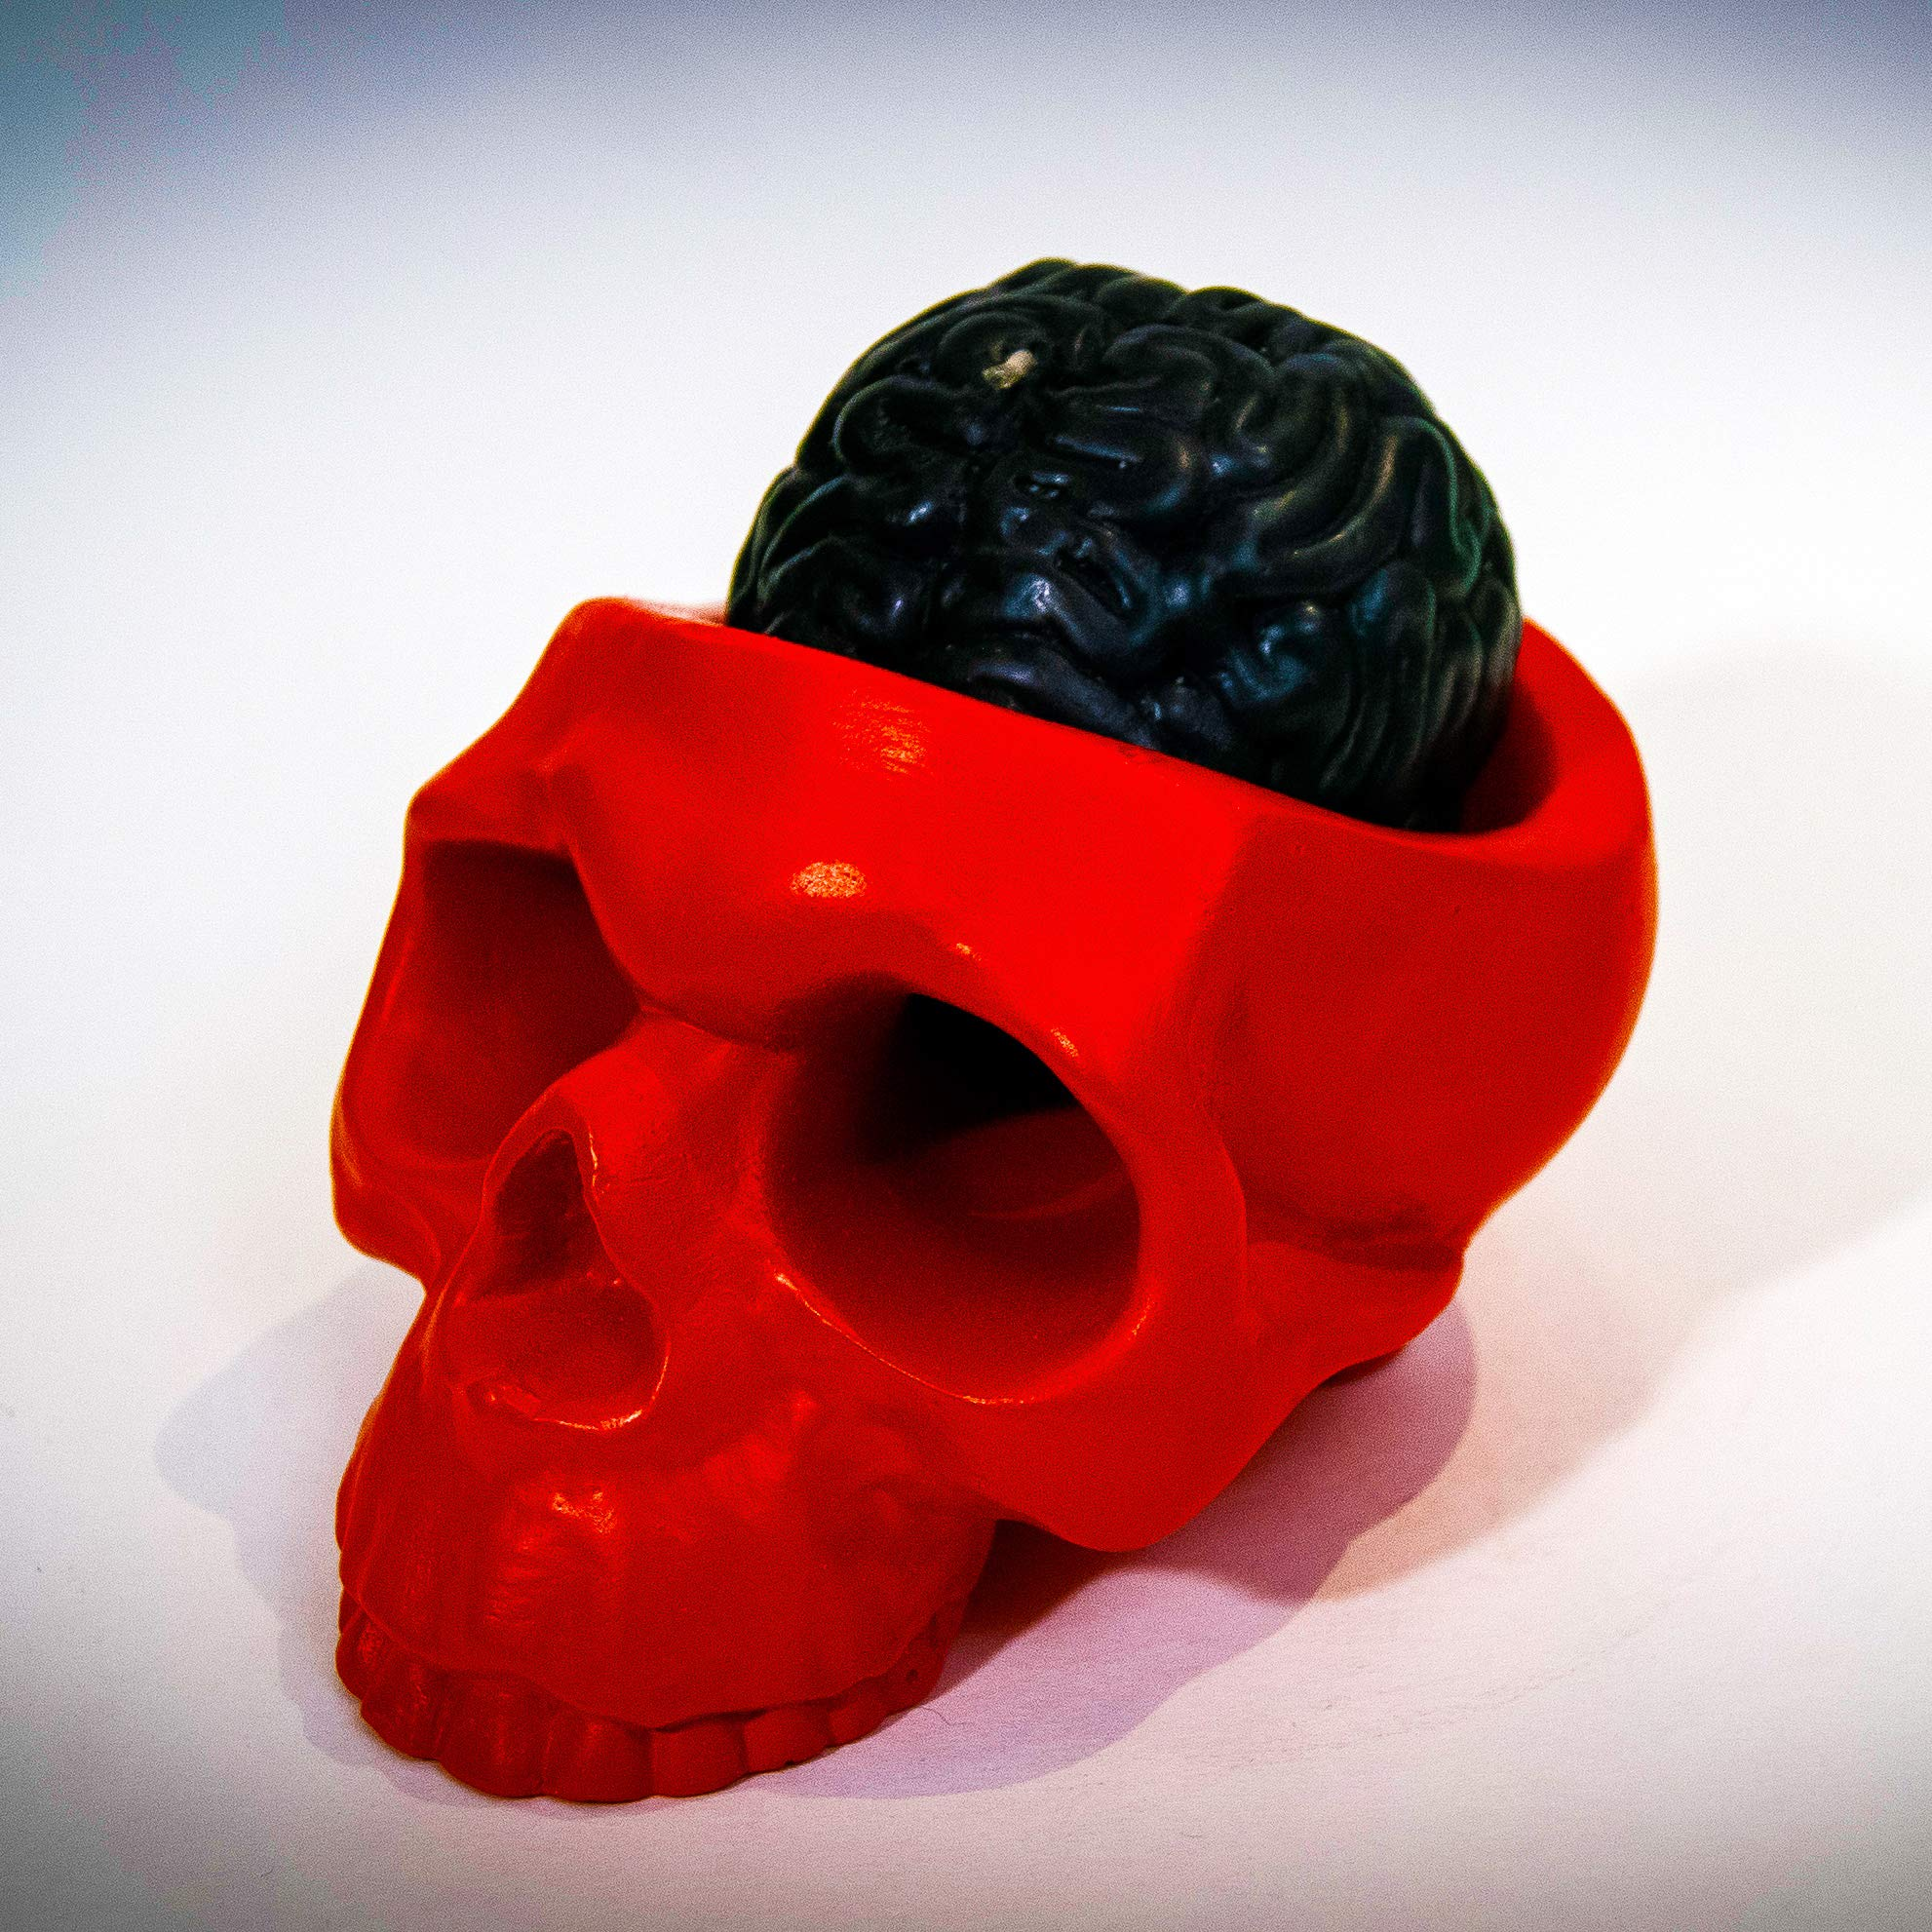 My Geek Things Handmade Novelty Crying Skull Candle Holder with a Brain Candle (Red/Black)